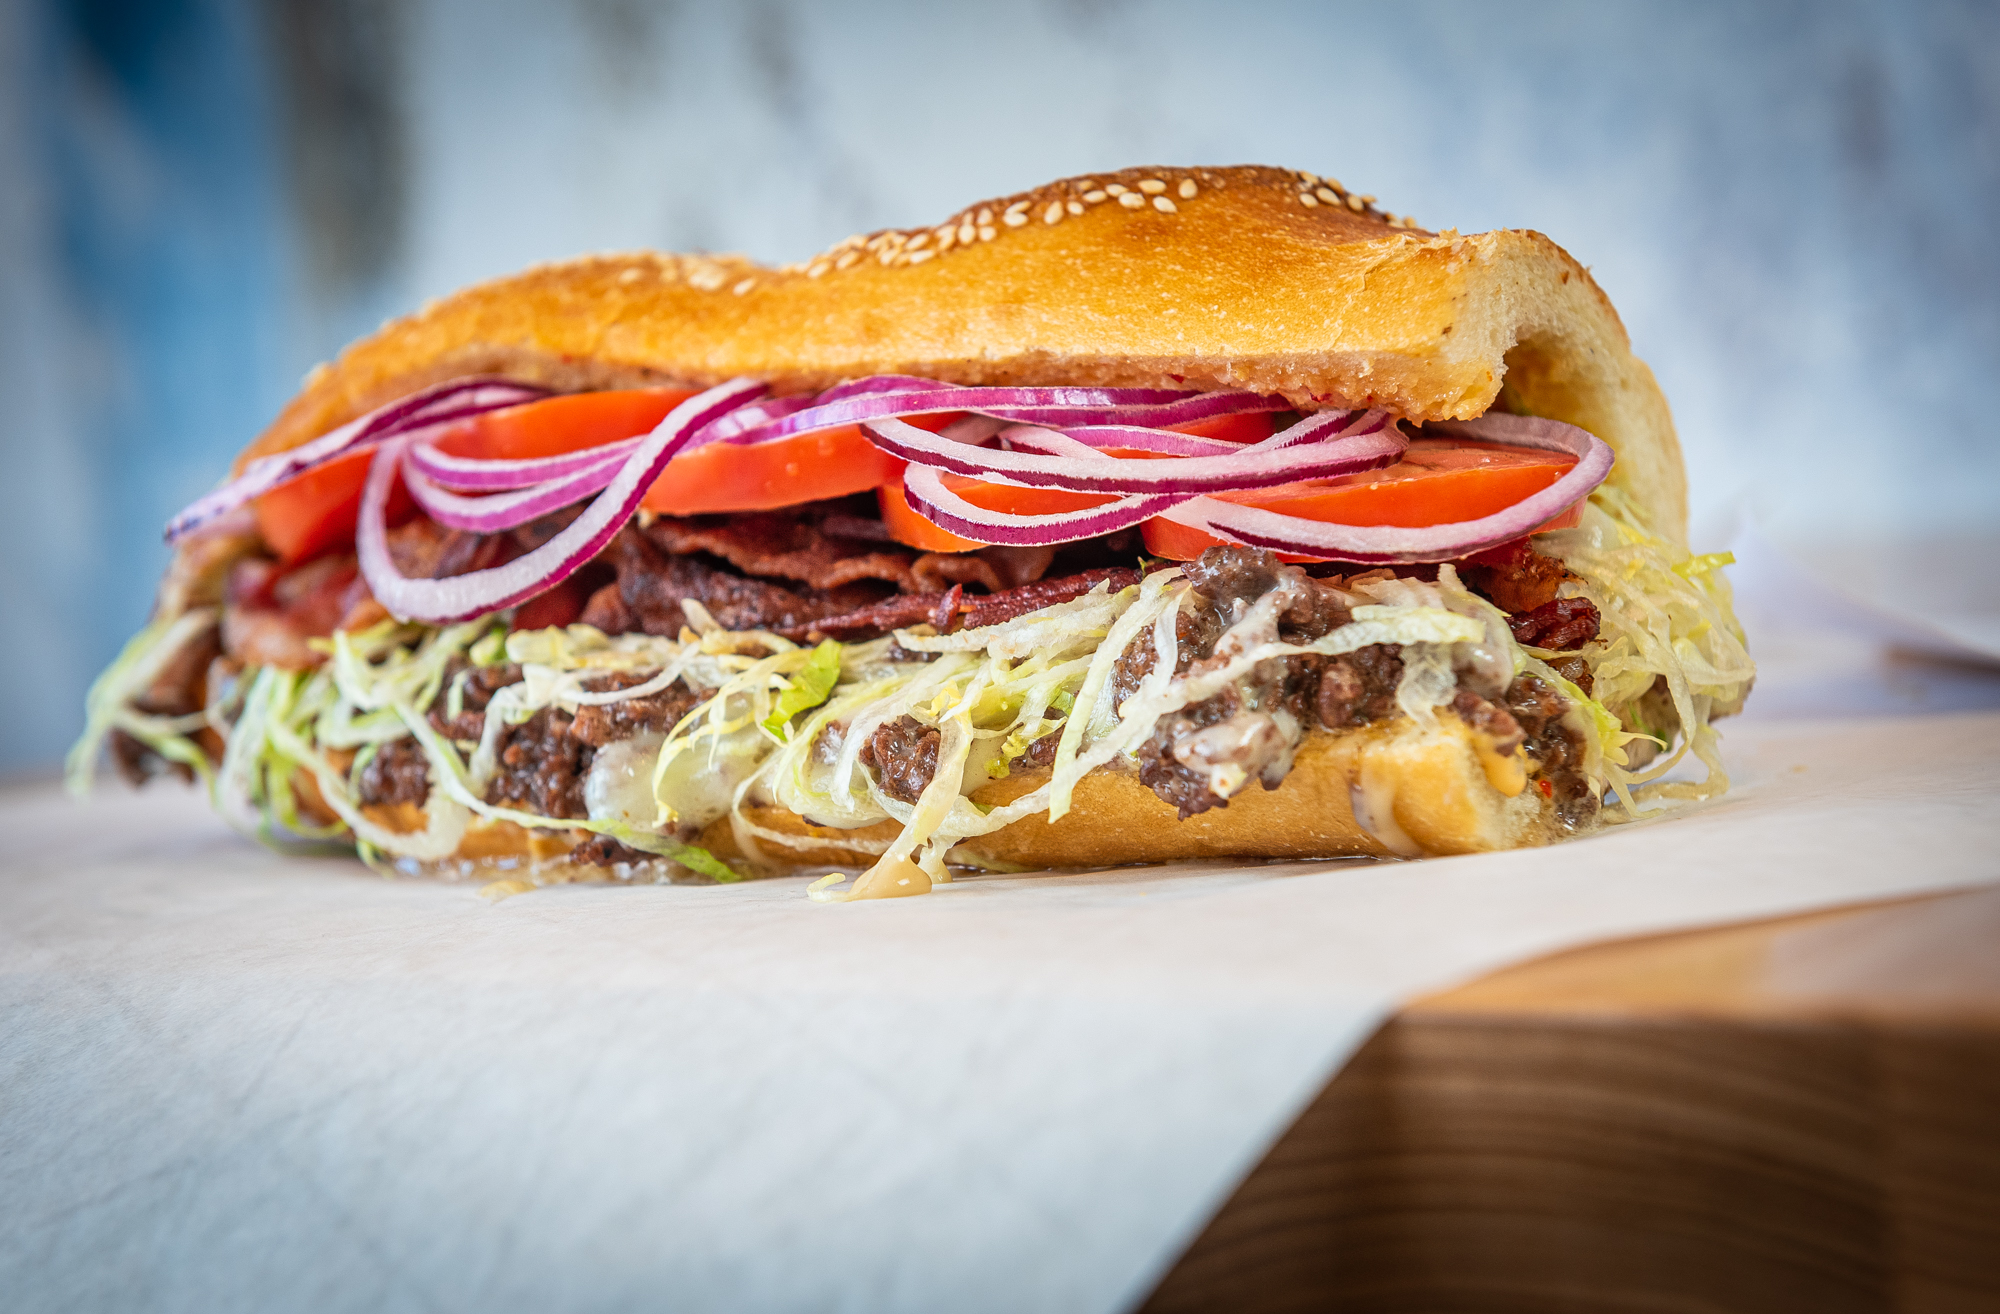 A Philly Special cheesesteak from Grazie Grazie shows off layers of grass-fed beef, Cooper sharp provolone, lettuce, red onion, and tomato on a golden roll